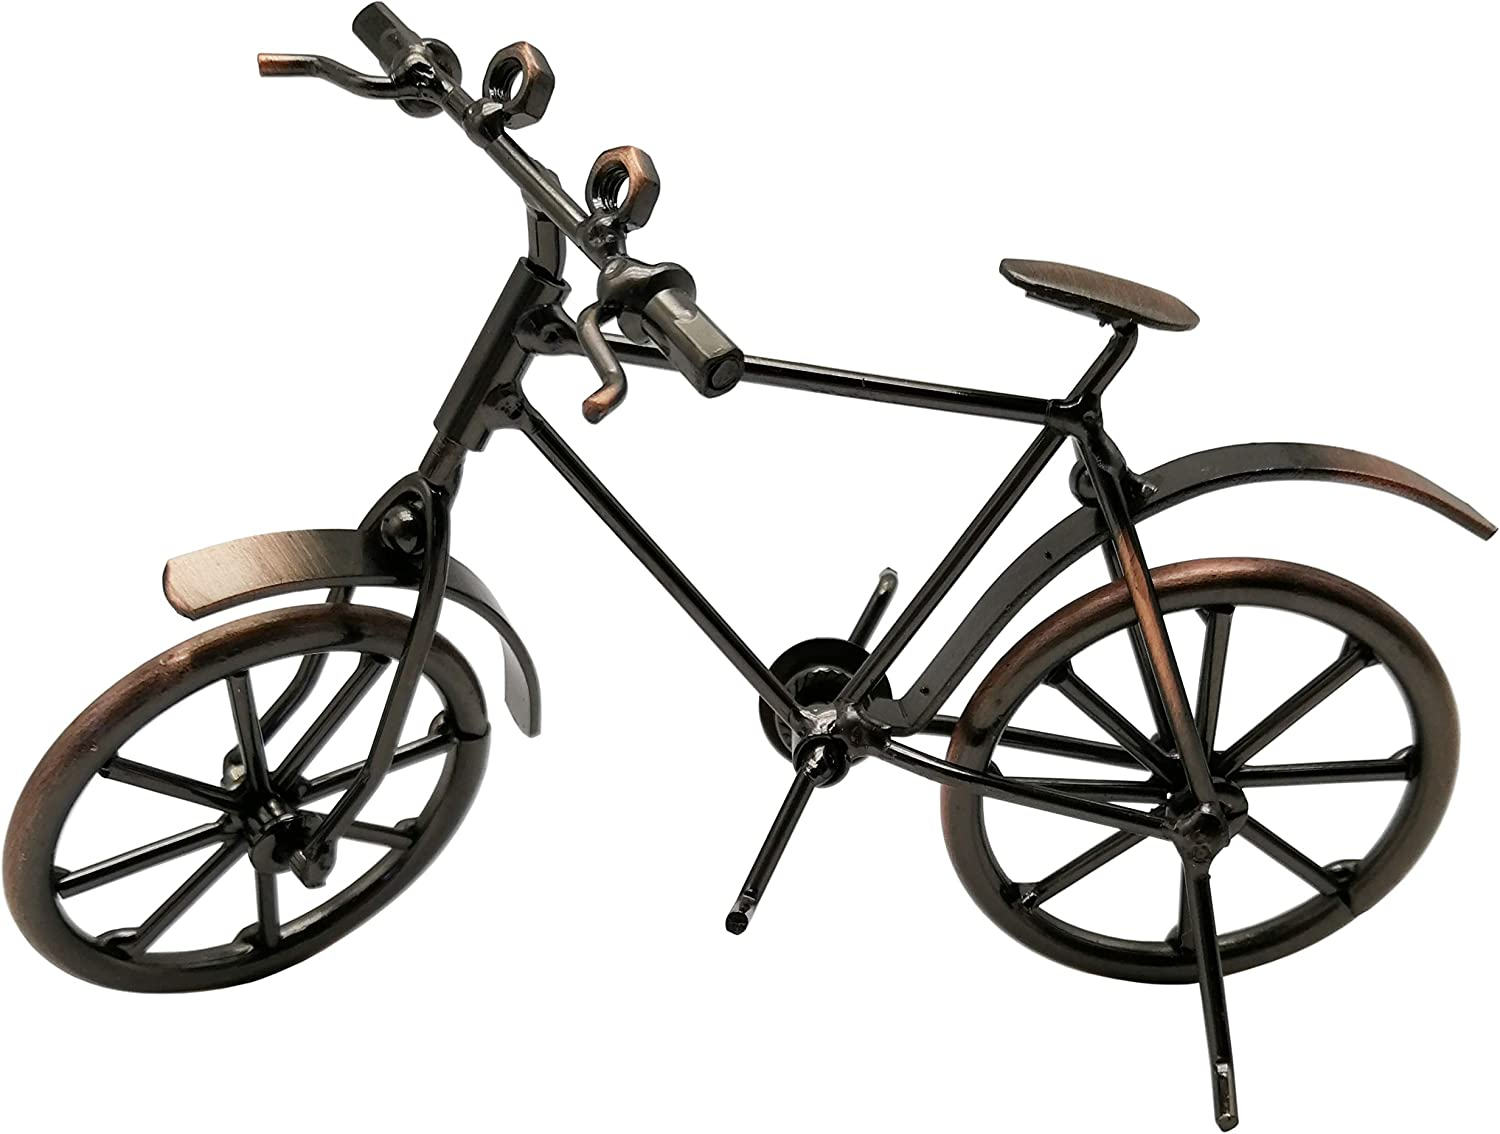 NYAIR Bicycle Decor Unique Metal Bicycle Home Office Bike Decoration Art Ornaments Handcrafted Metal Antique Vintage Bicycle Model